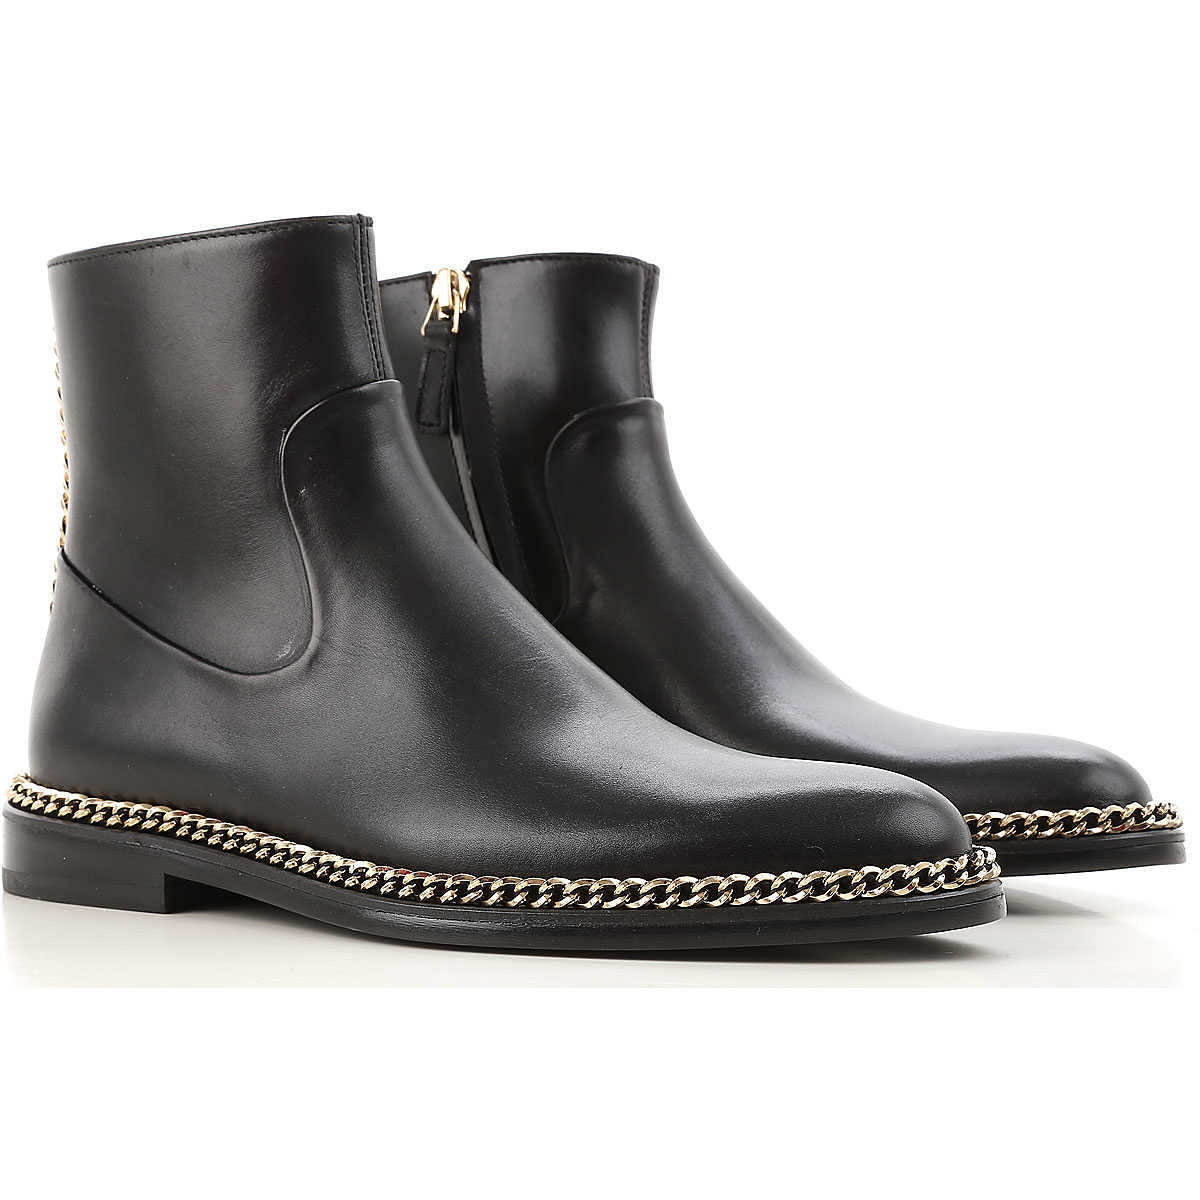 Lanvin Boots for Women Booties On Sale in Outlet Canada - GOOFASH - Womens BOOTS